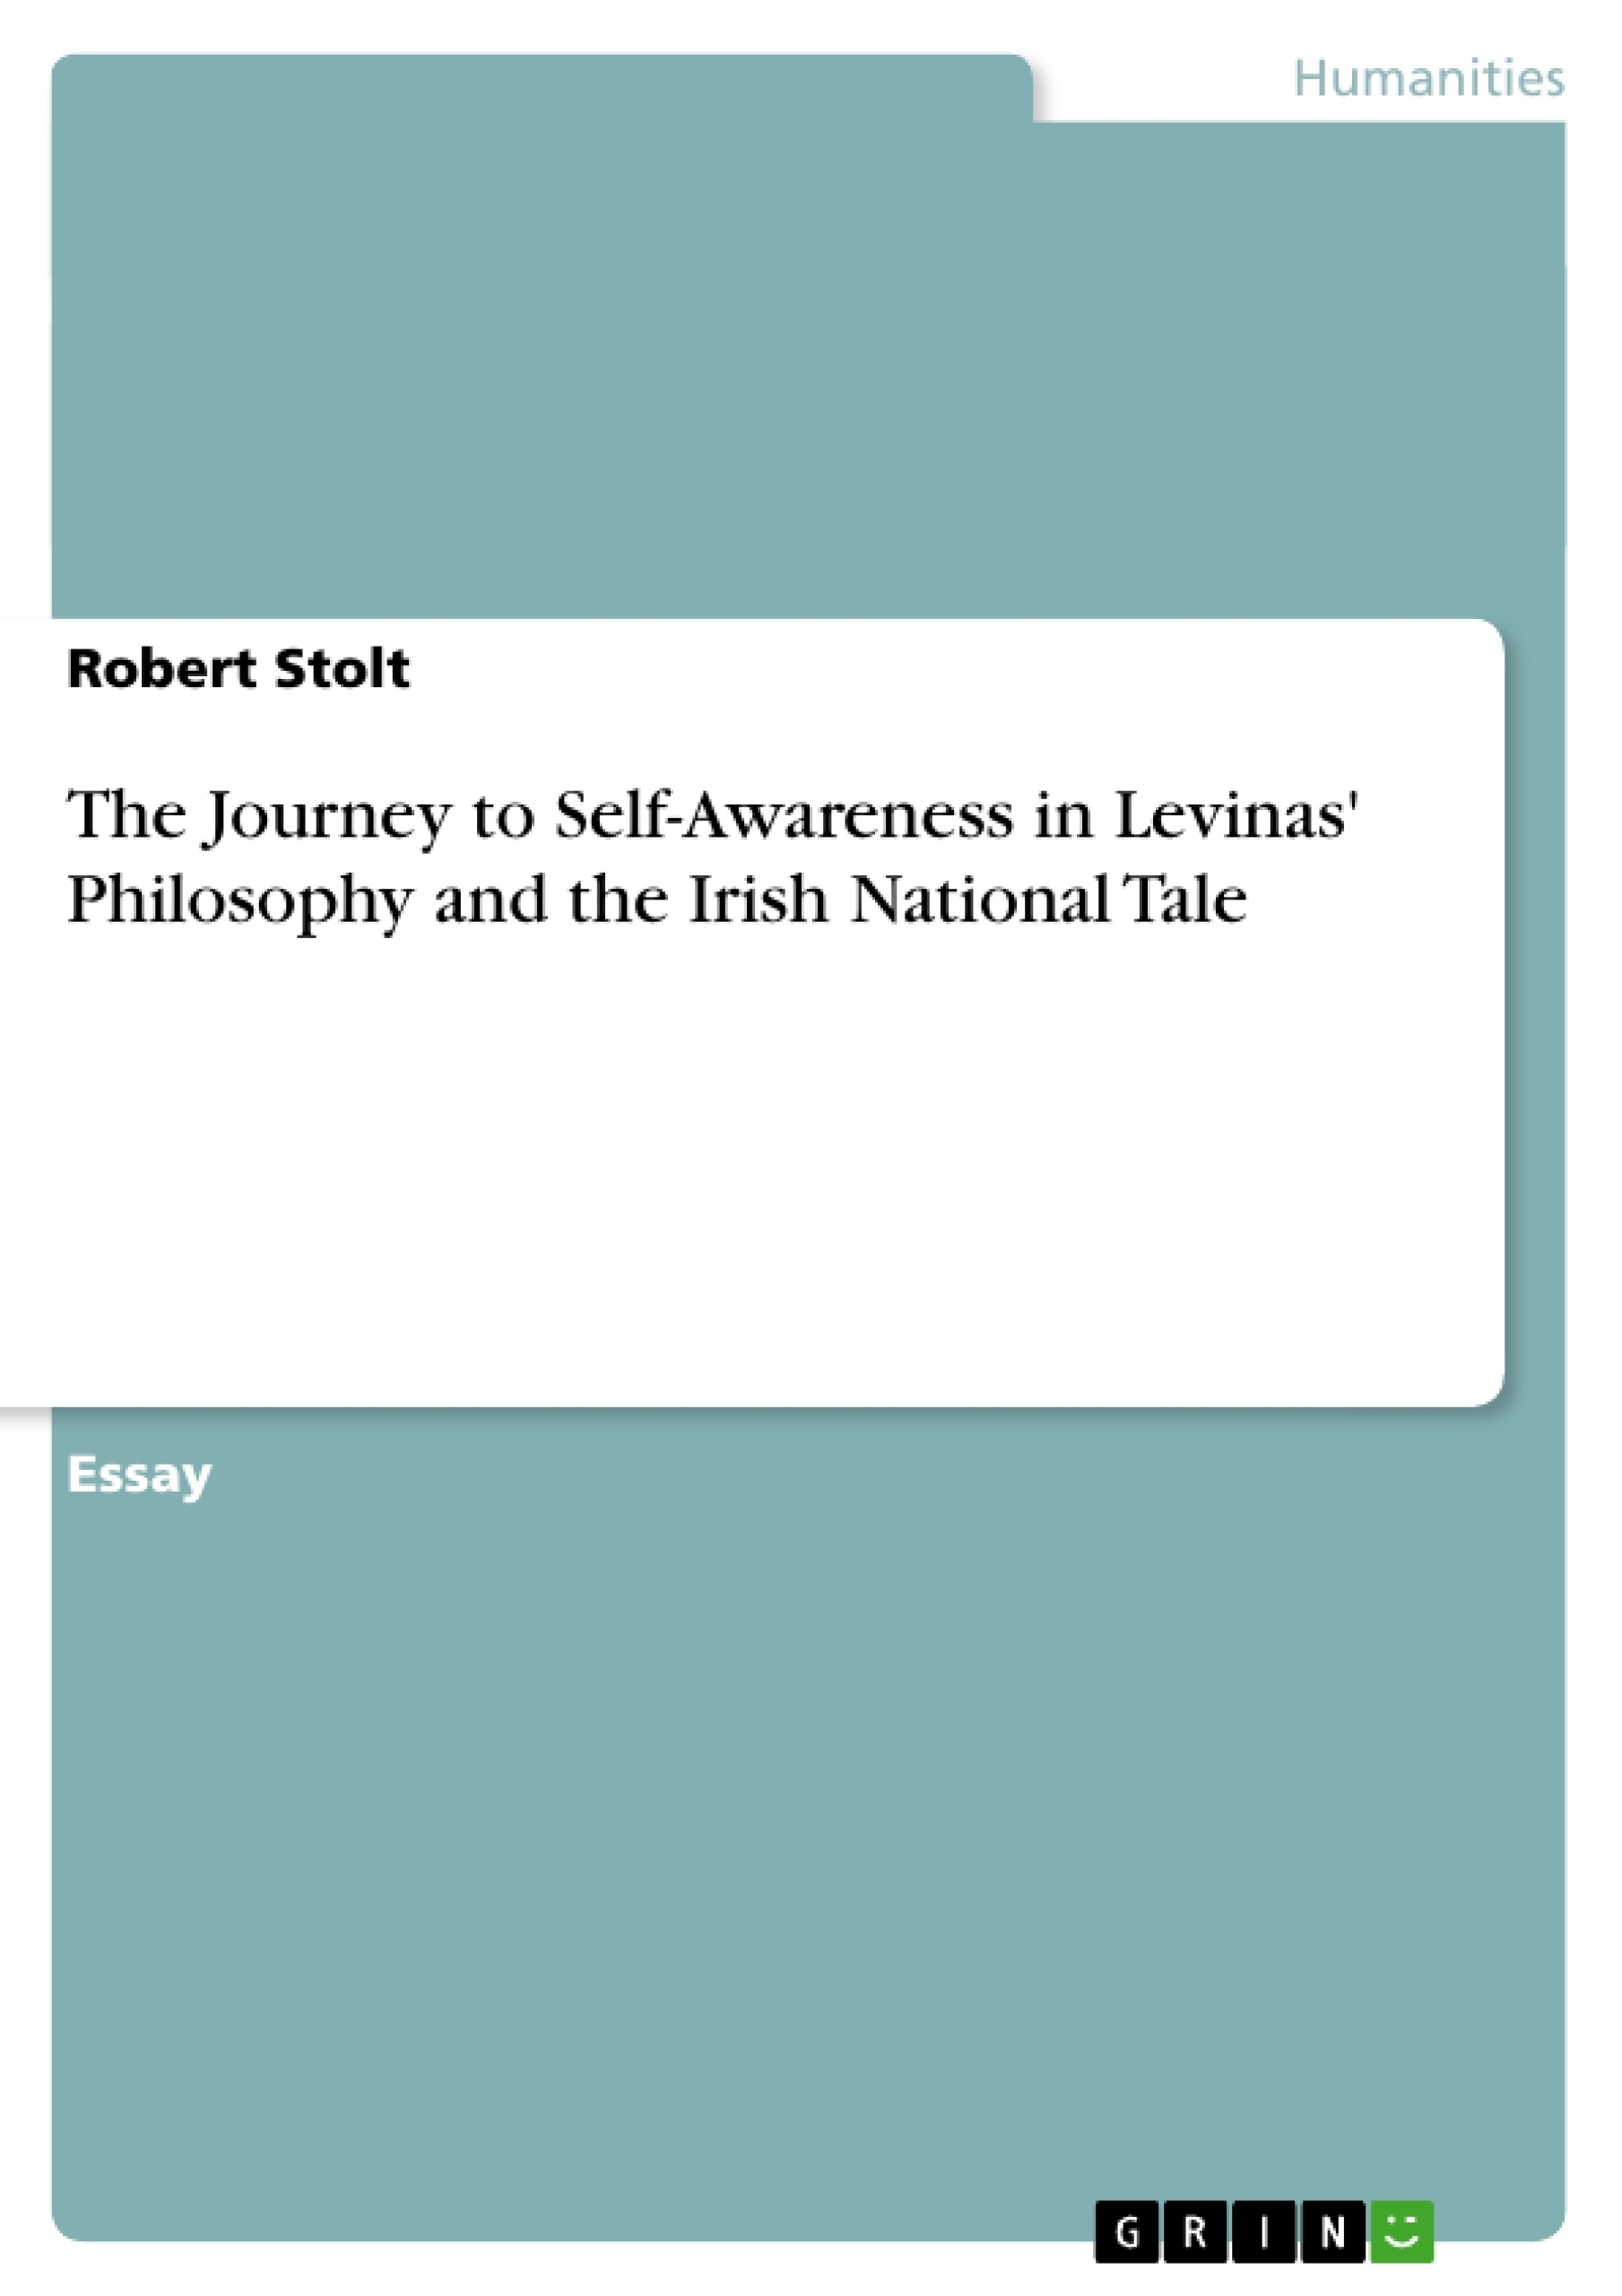 Title: The Journey to Self-Awareness in Levinas' Philosophy and the Irish National Tale